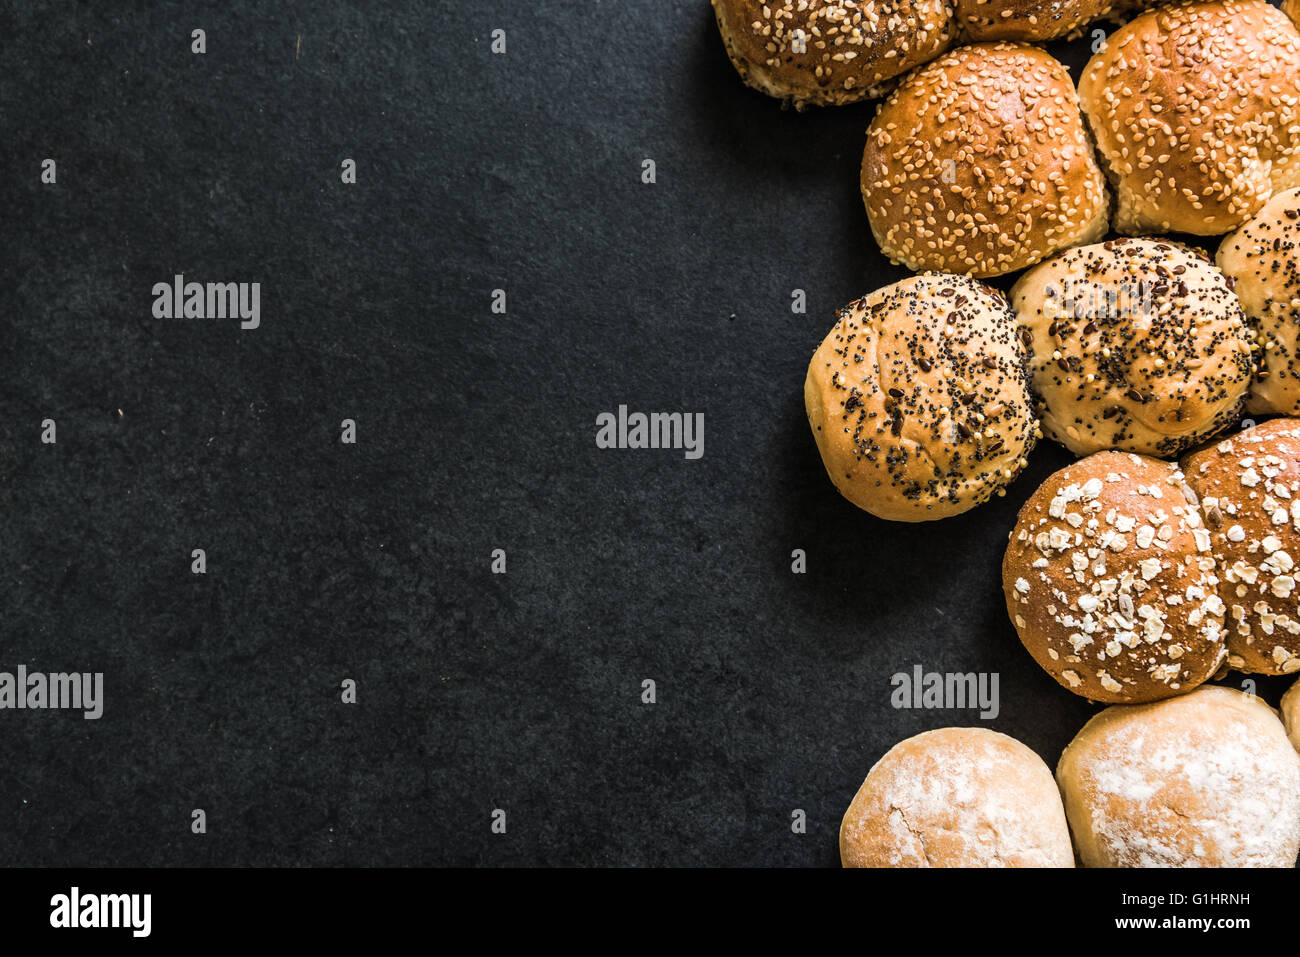 Artisan bakery border background with copy space for product list or ingredients - Stock Image